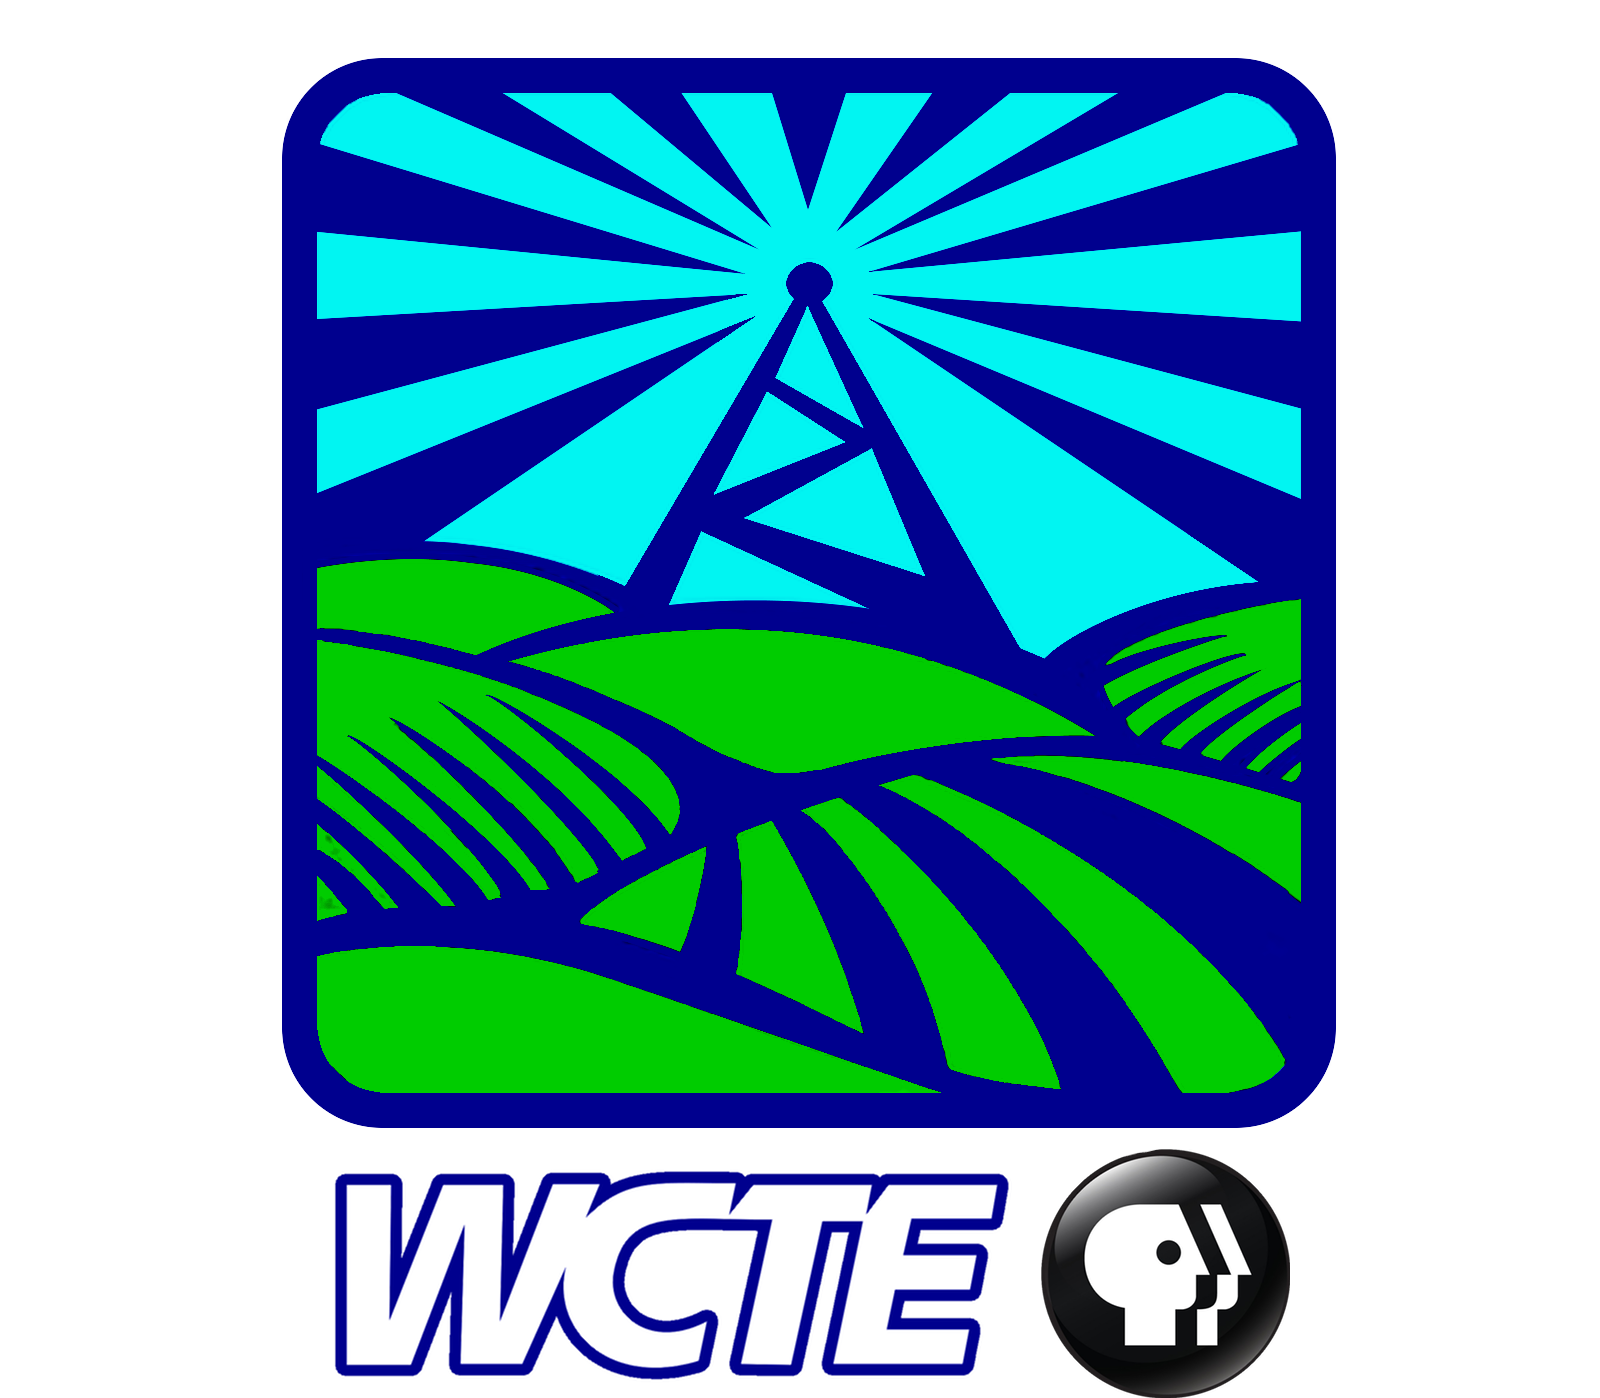 WCTE Contact Information